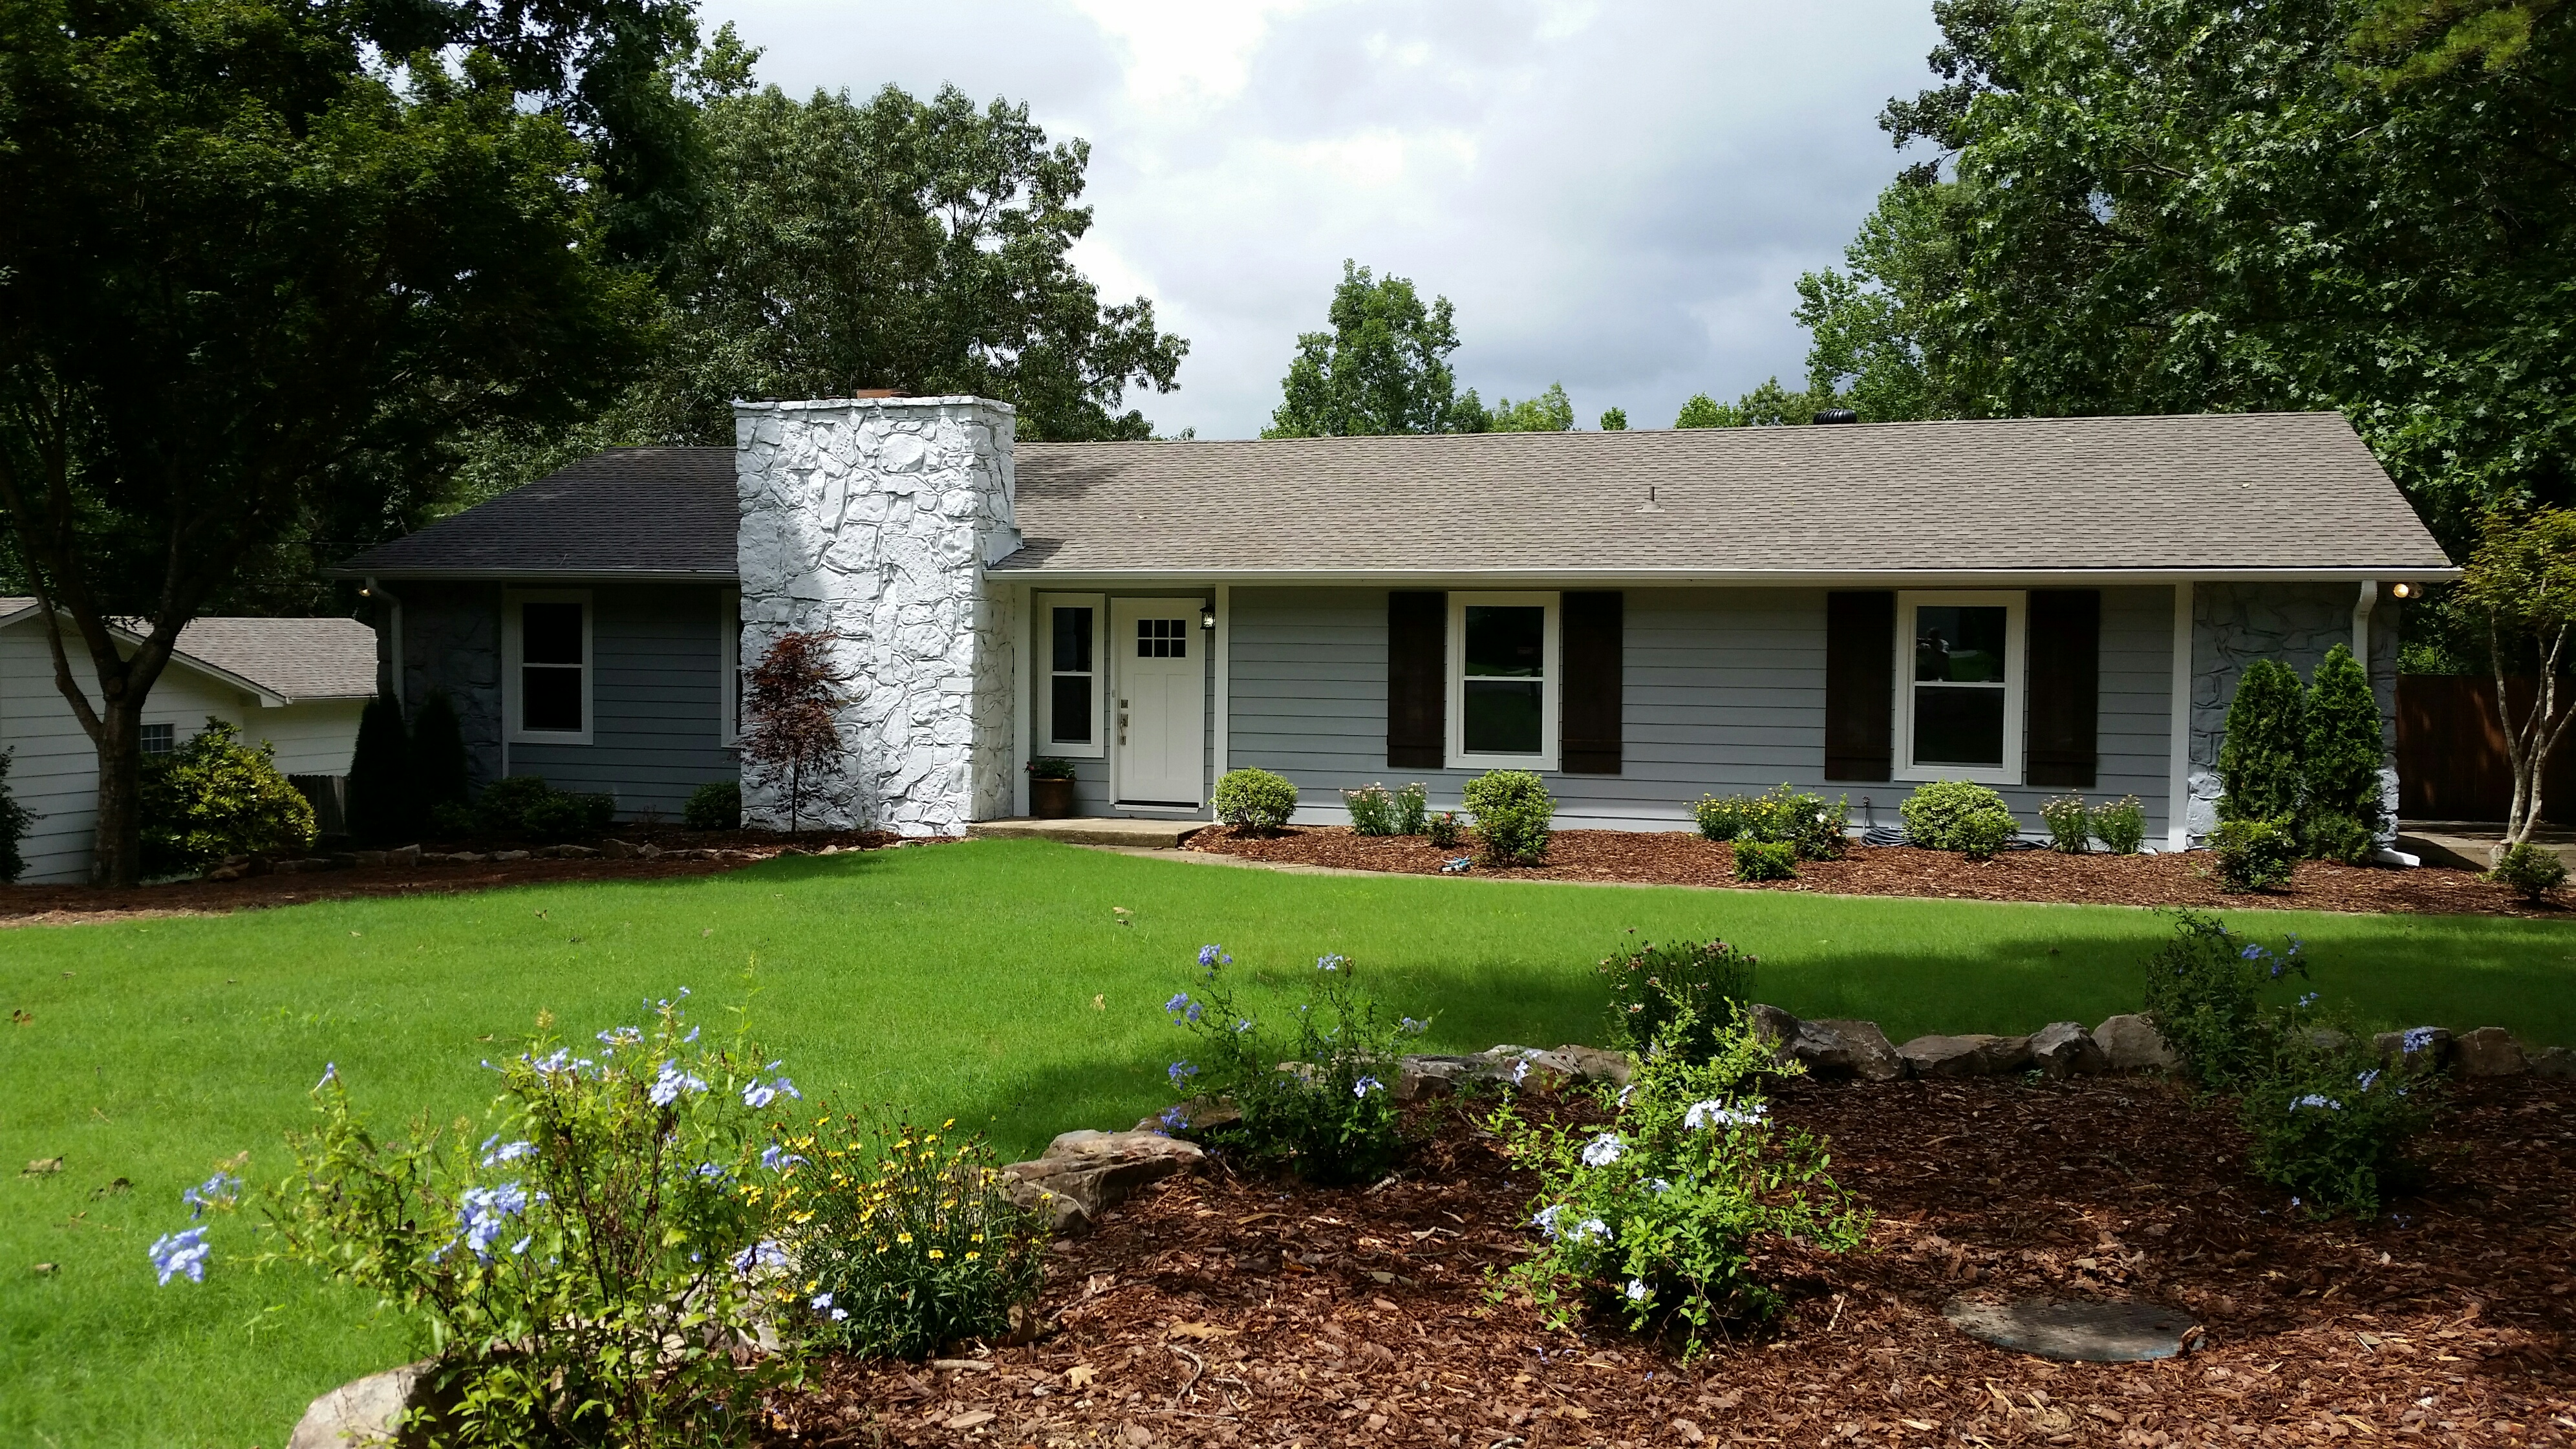 3br Home